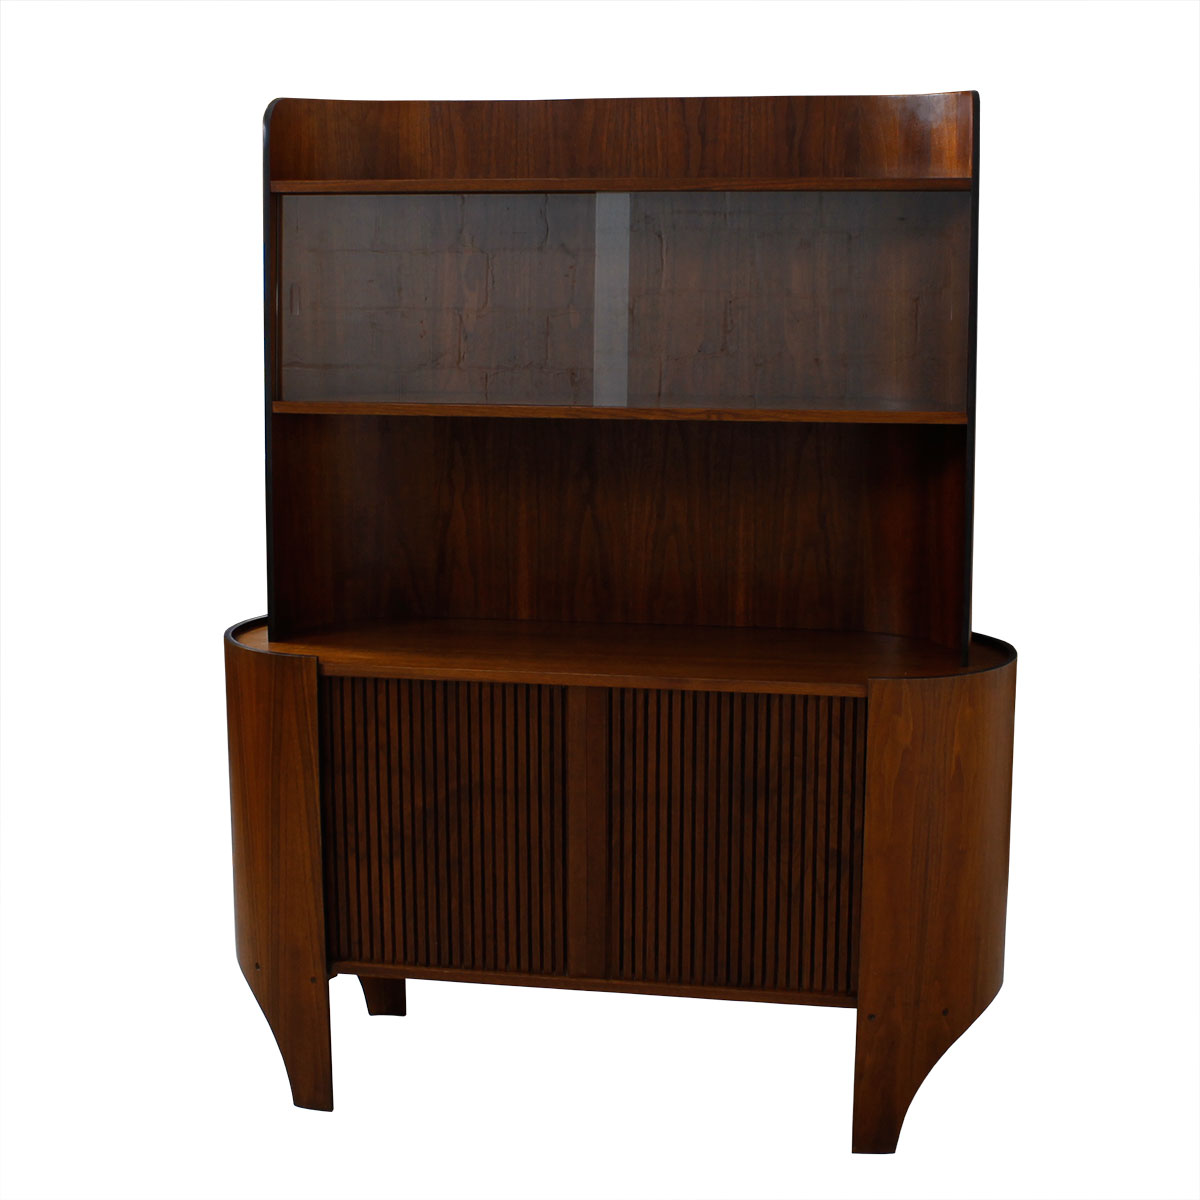 Rare Henry P. Glass Walnut Bentwood Tambour Door Display / Bar Cabinet